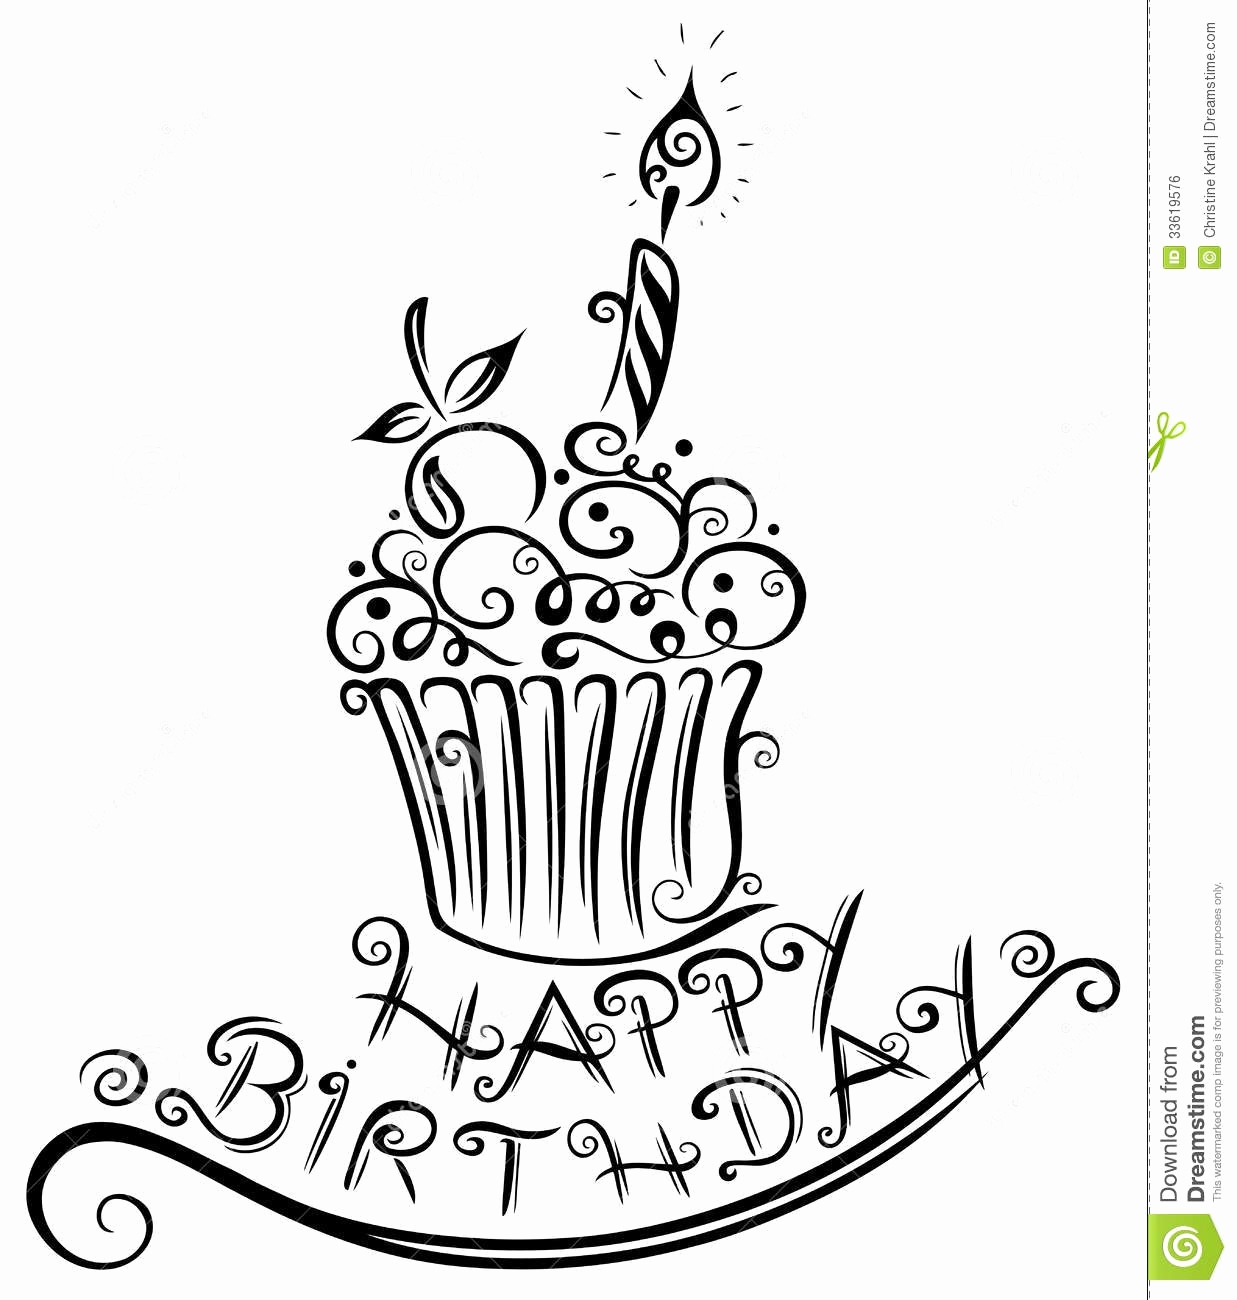 happy birthday cupcake coloring pages ; cupcake-coloring-page-lovely-happy-birthday-cupcake-coloring-page-free-of-cupcake-coloring-page